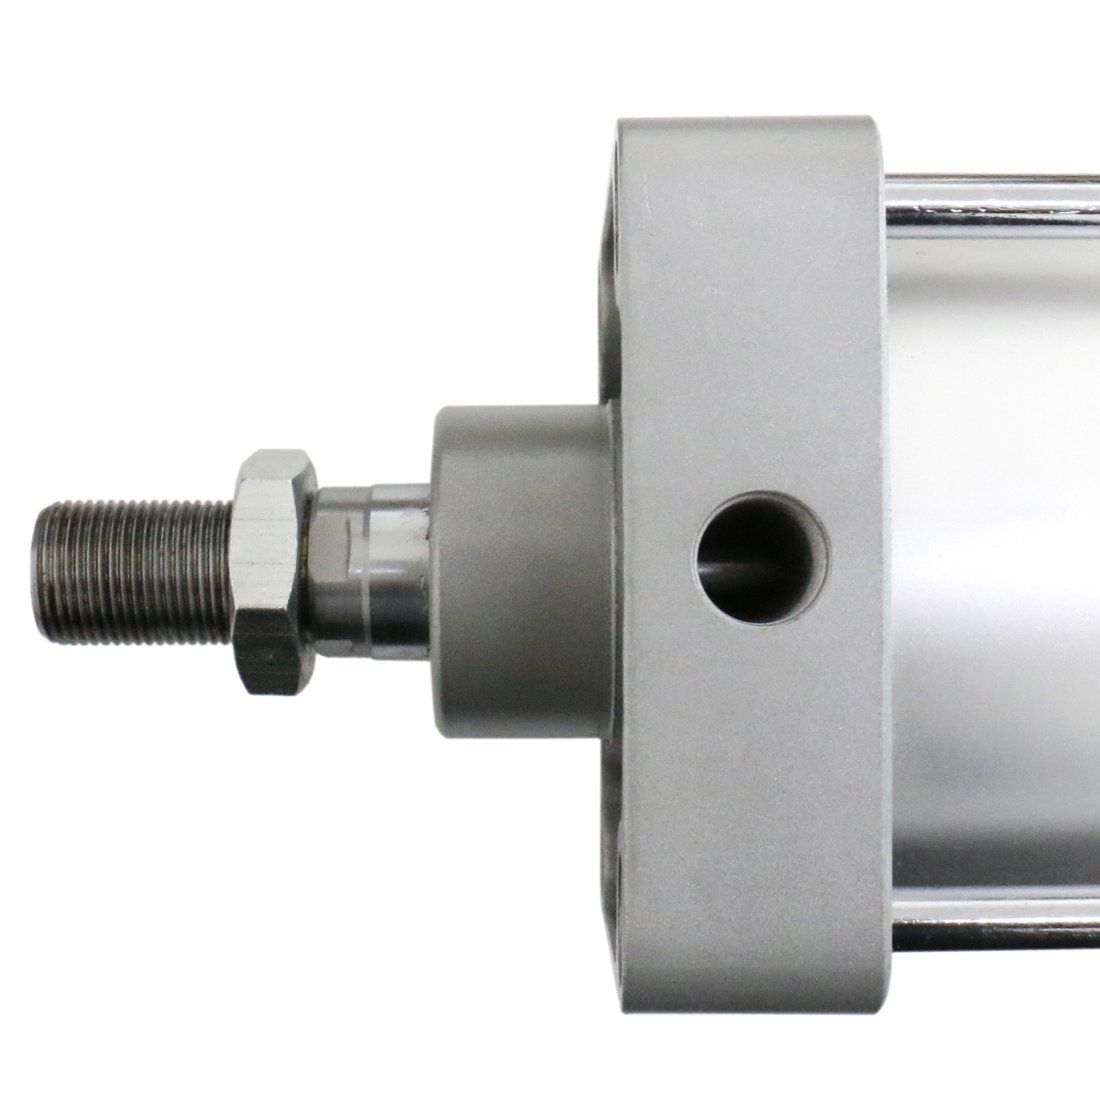 Baomain Pneumatic Air Cylinder SC 125-300 PT 1/2; Bore: 5'', Stroke: 12''; Screwed Piston Rod Dual Action by Baomain (Image #2)